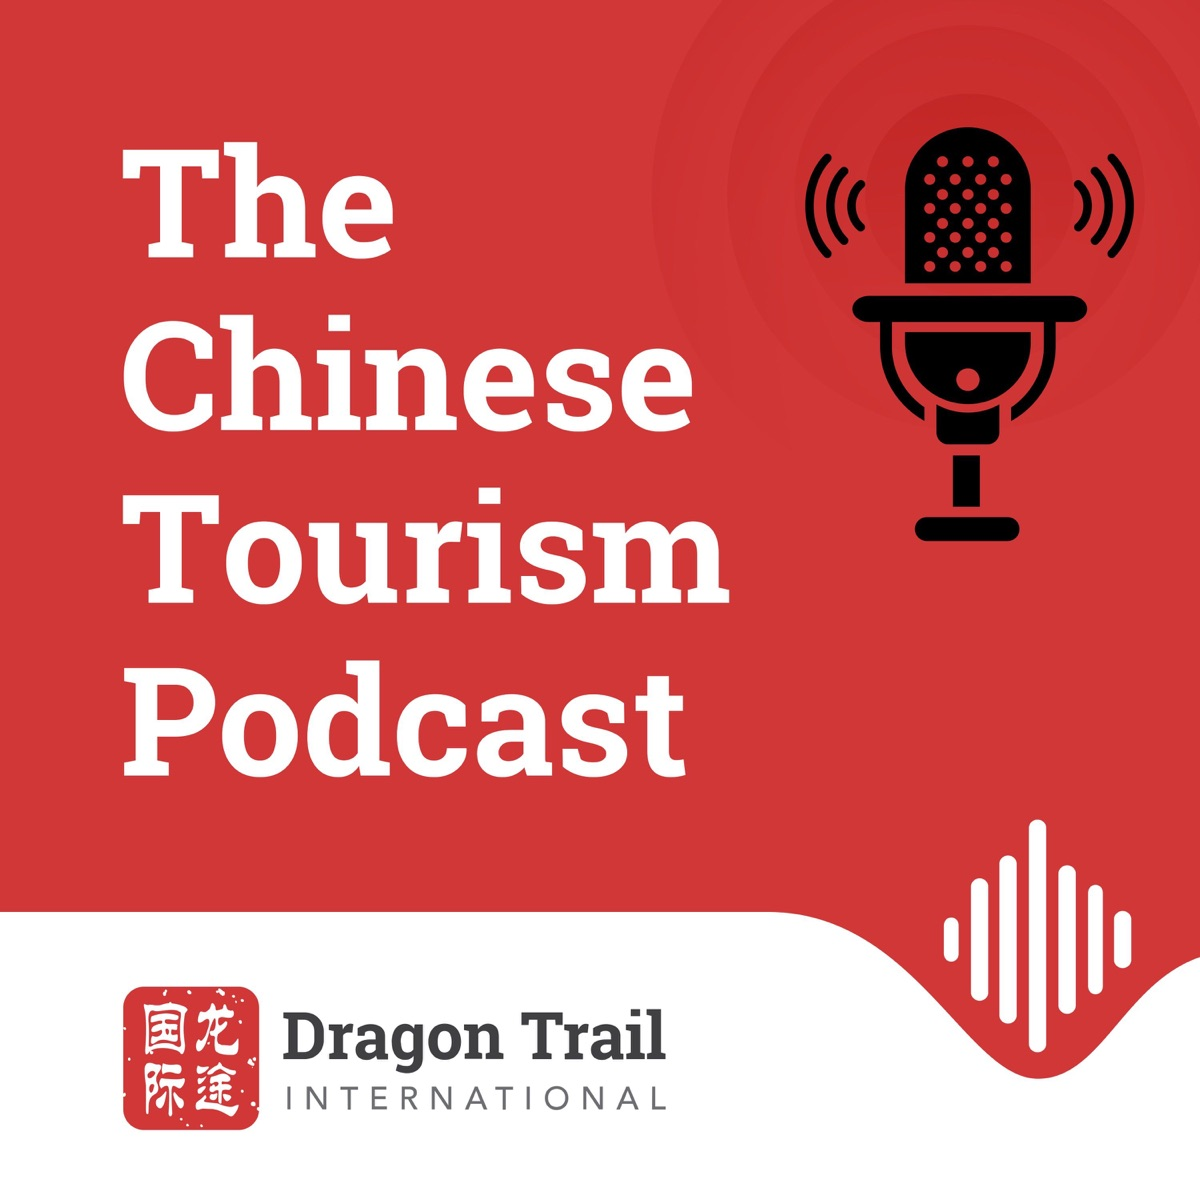 The Chinese Tourism Podcast